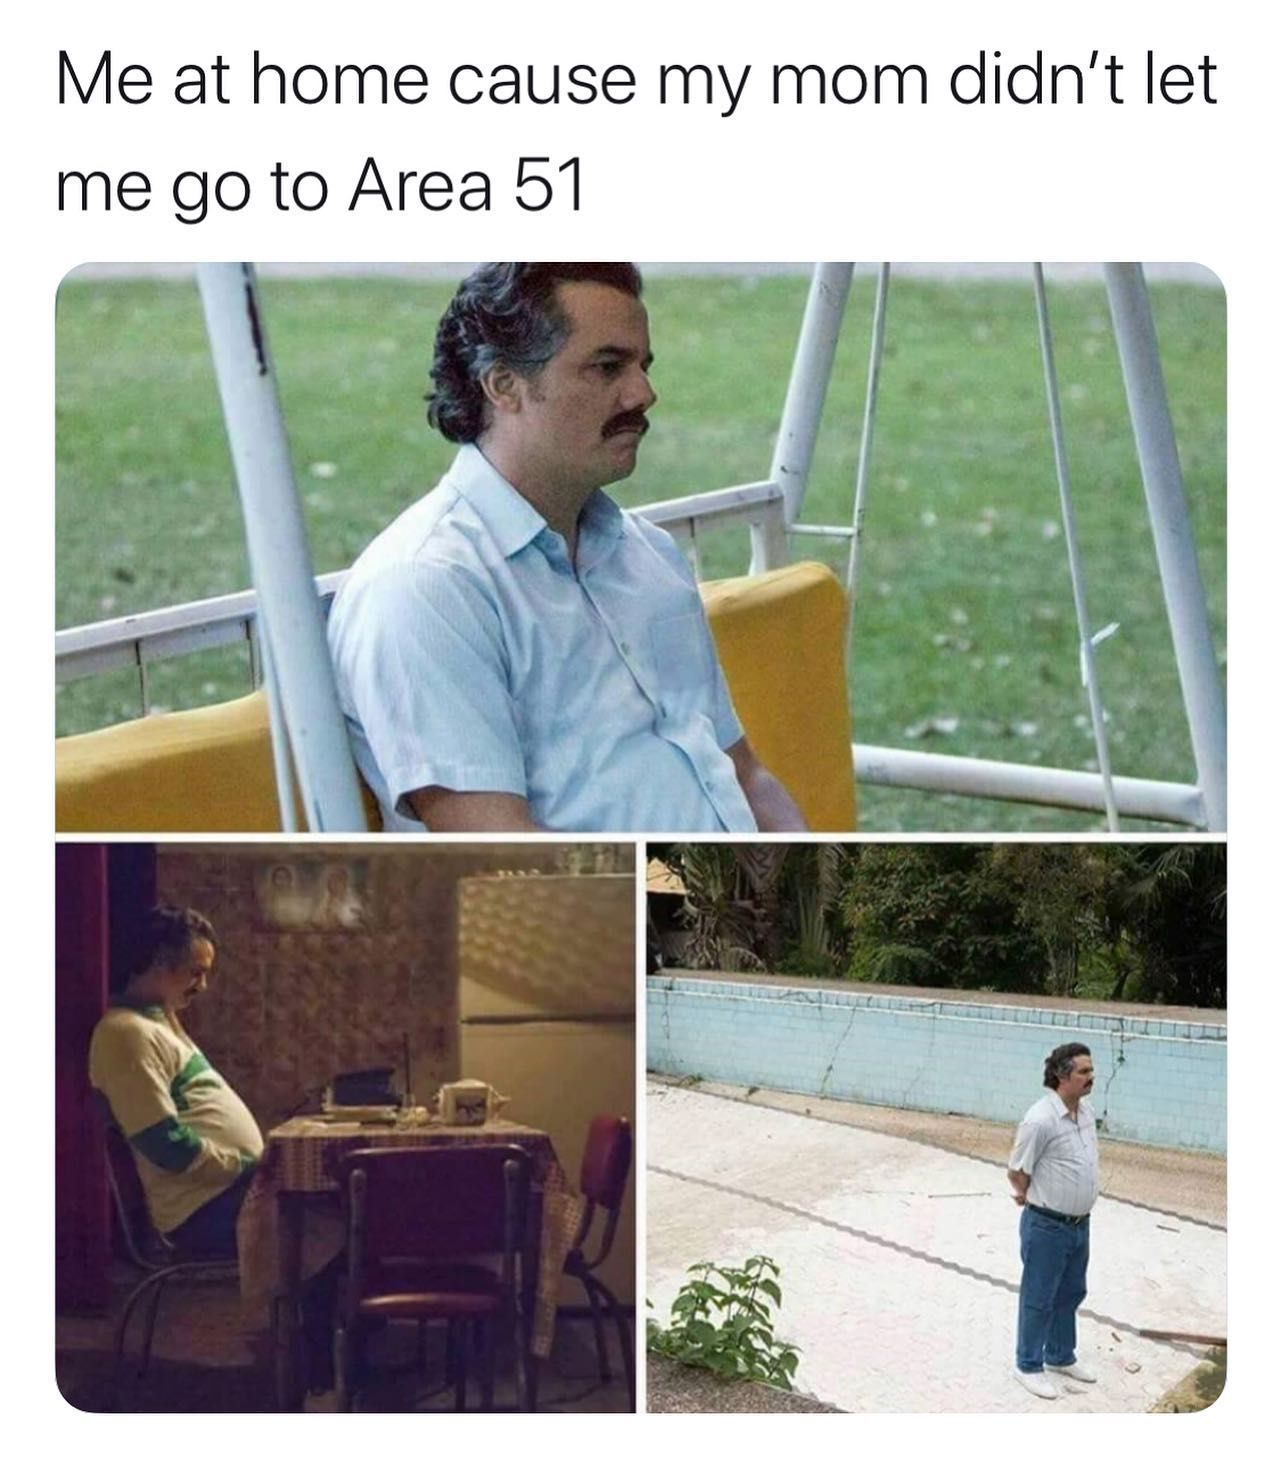 Image may contain: Area 51 memes, Area 51, meme, reaction, twitter, Las Vegas, Nevada, where, origin, explained, what is Area 51, alien, Poster, Advertisement, Jeans, Denim, Wood, Furniture, Chair, Pants, Clothing, Apparel, Human, Person